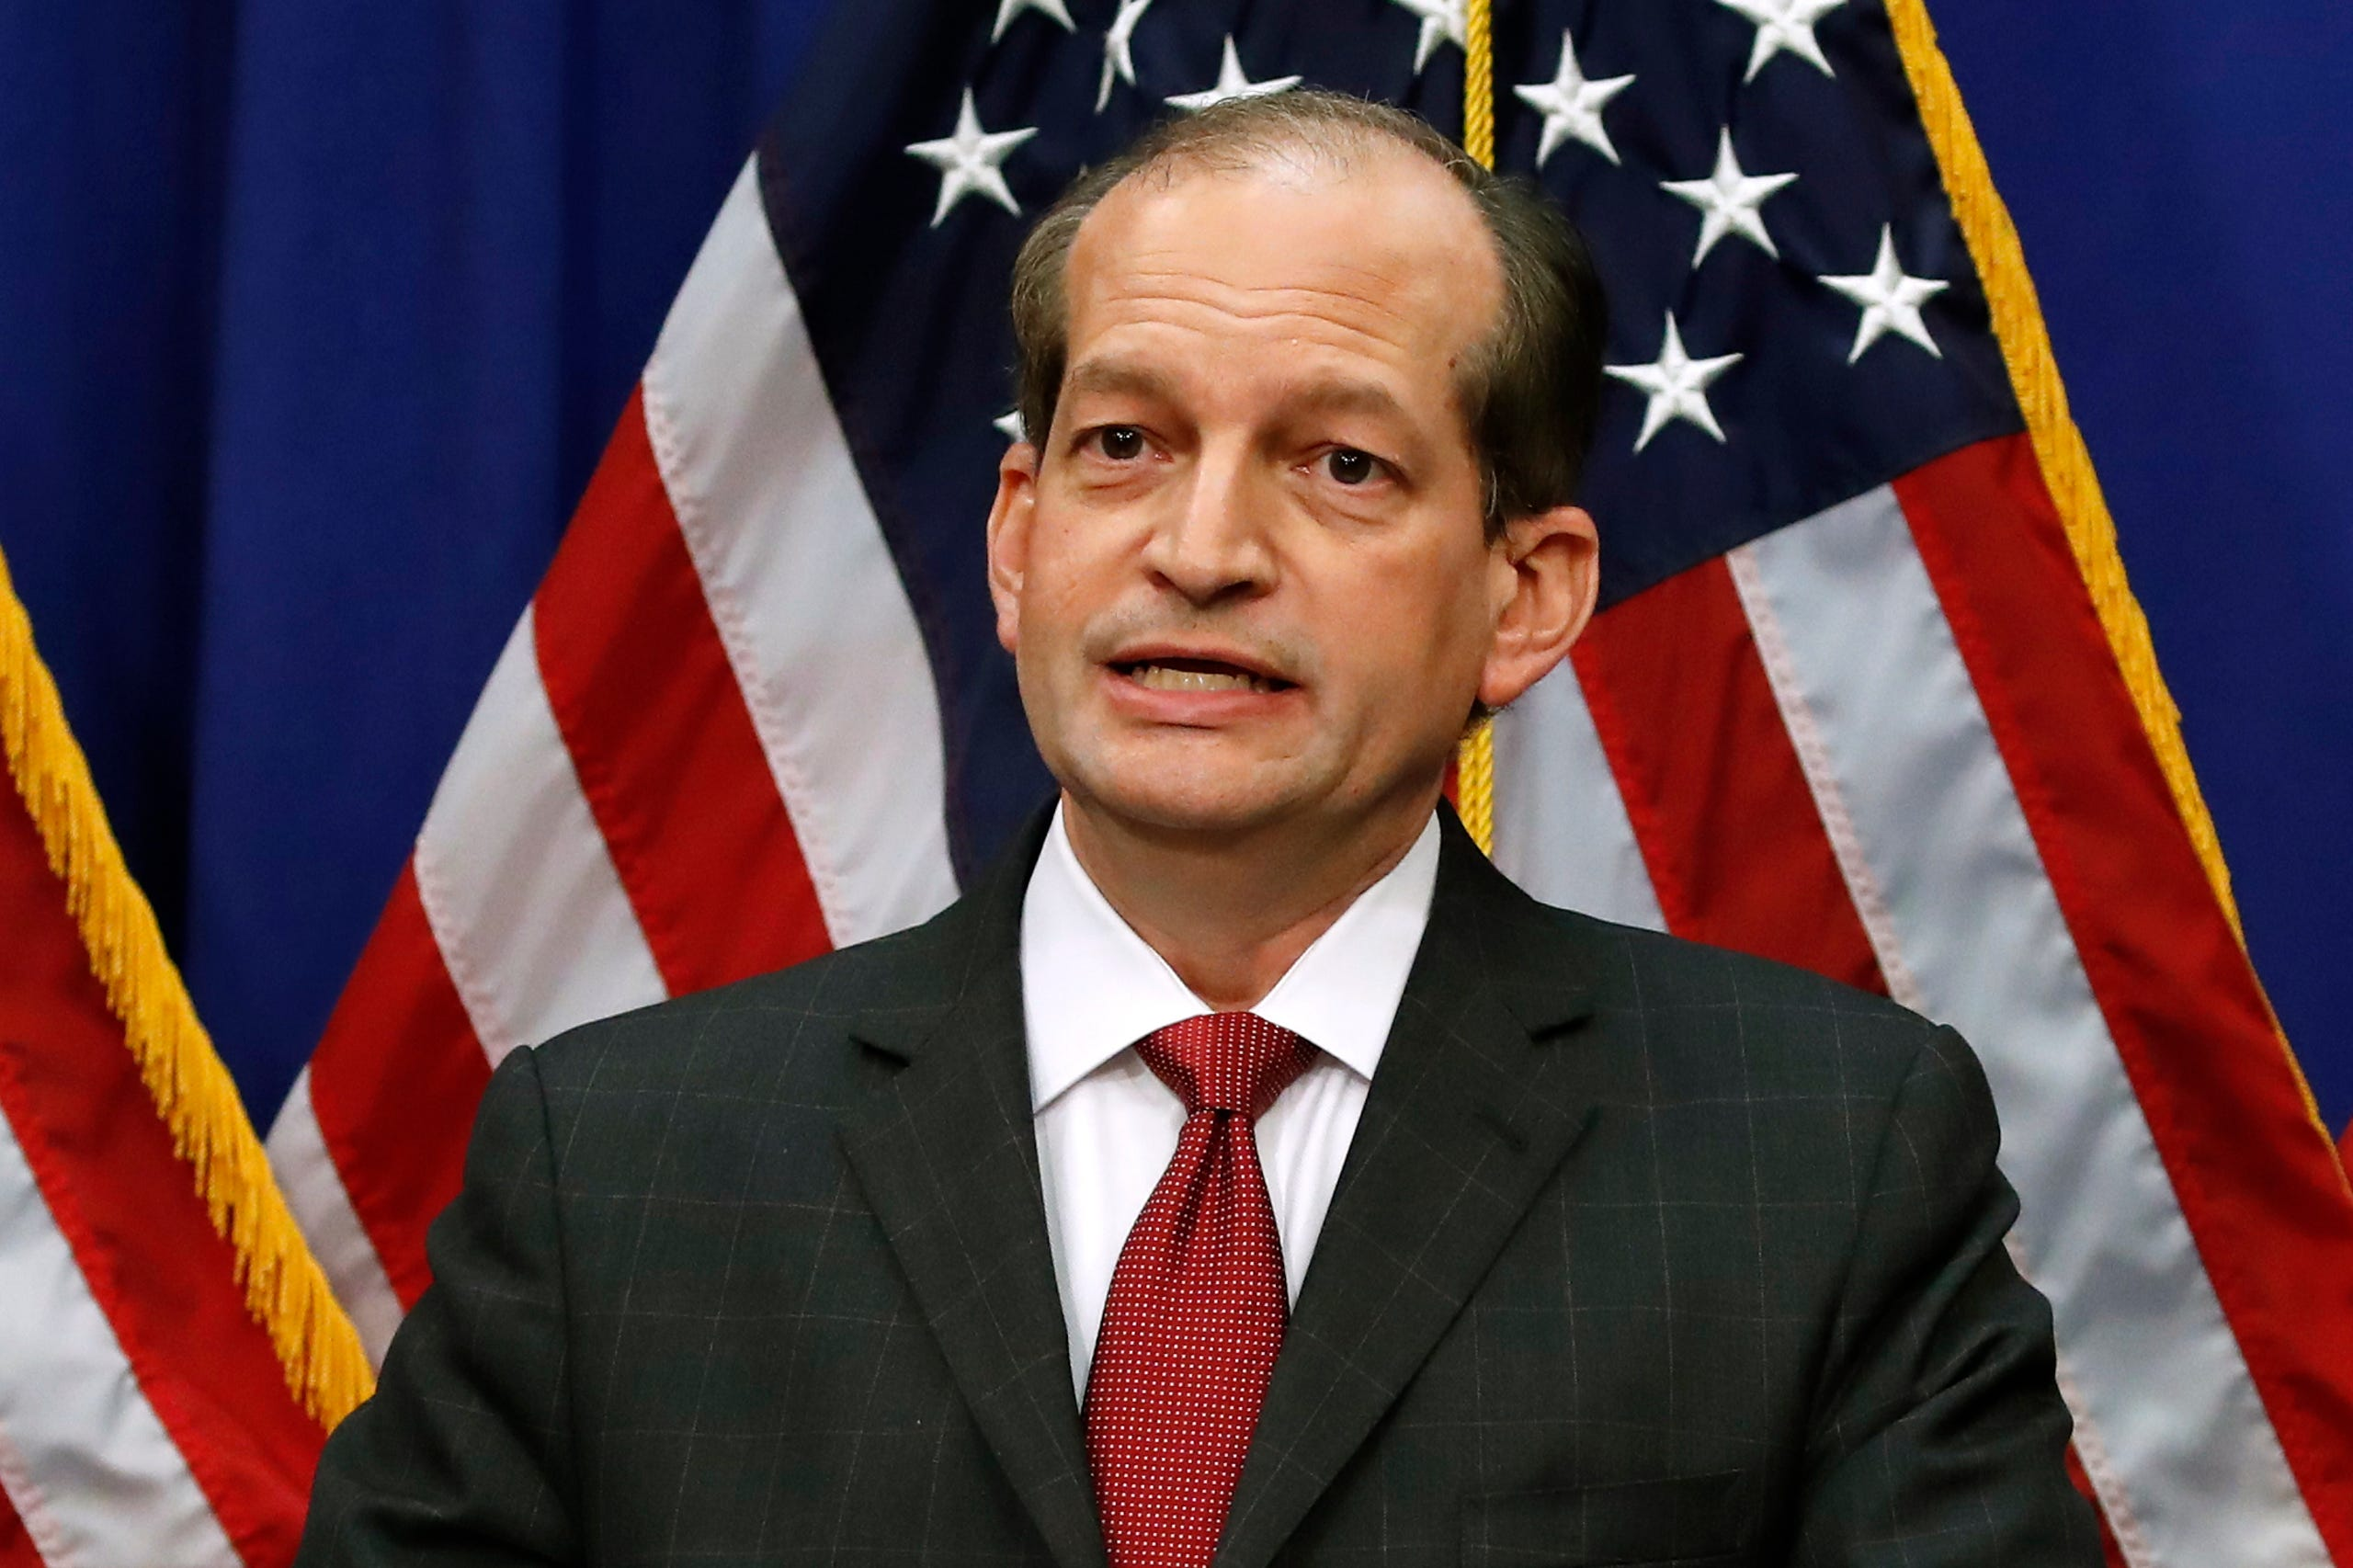 Labor Secretary Alex Acosta speaks at the Department of Labor in Washington on July 10, 2019. Acosta resigned on July 12, 2019amid the fallout over a plea deal he made with wealthy financier Jeffrey Epstein, a sex offender charged with human trafficking girls as young as 14.